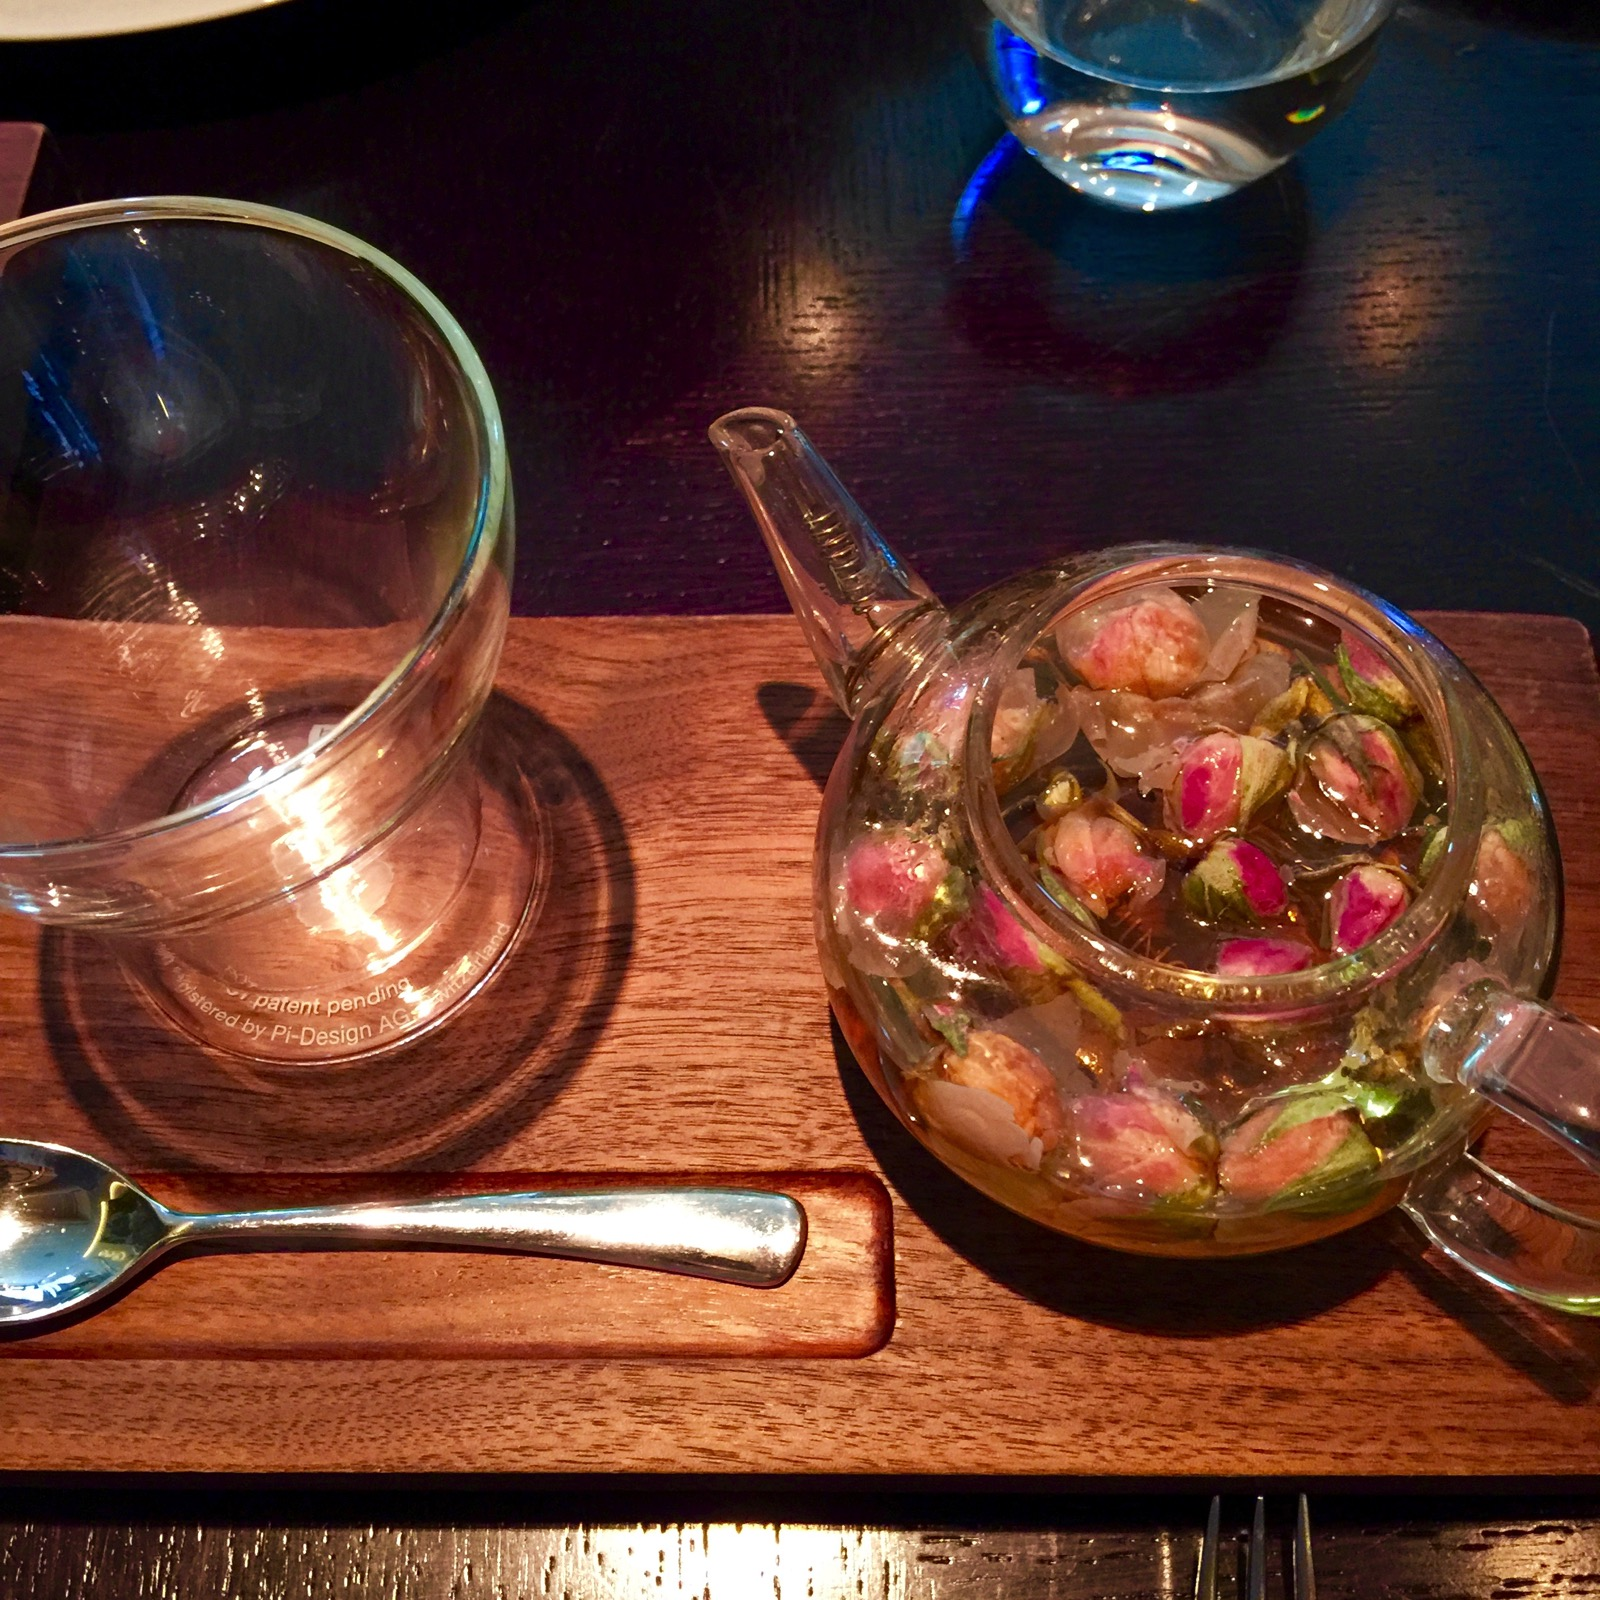 Dinner by Heston Blumenthalバラのつぼみのお茶